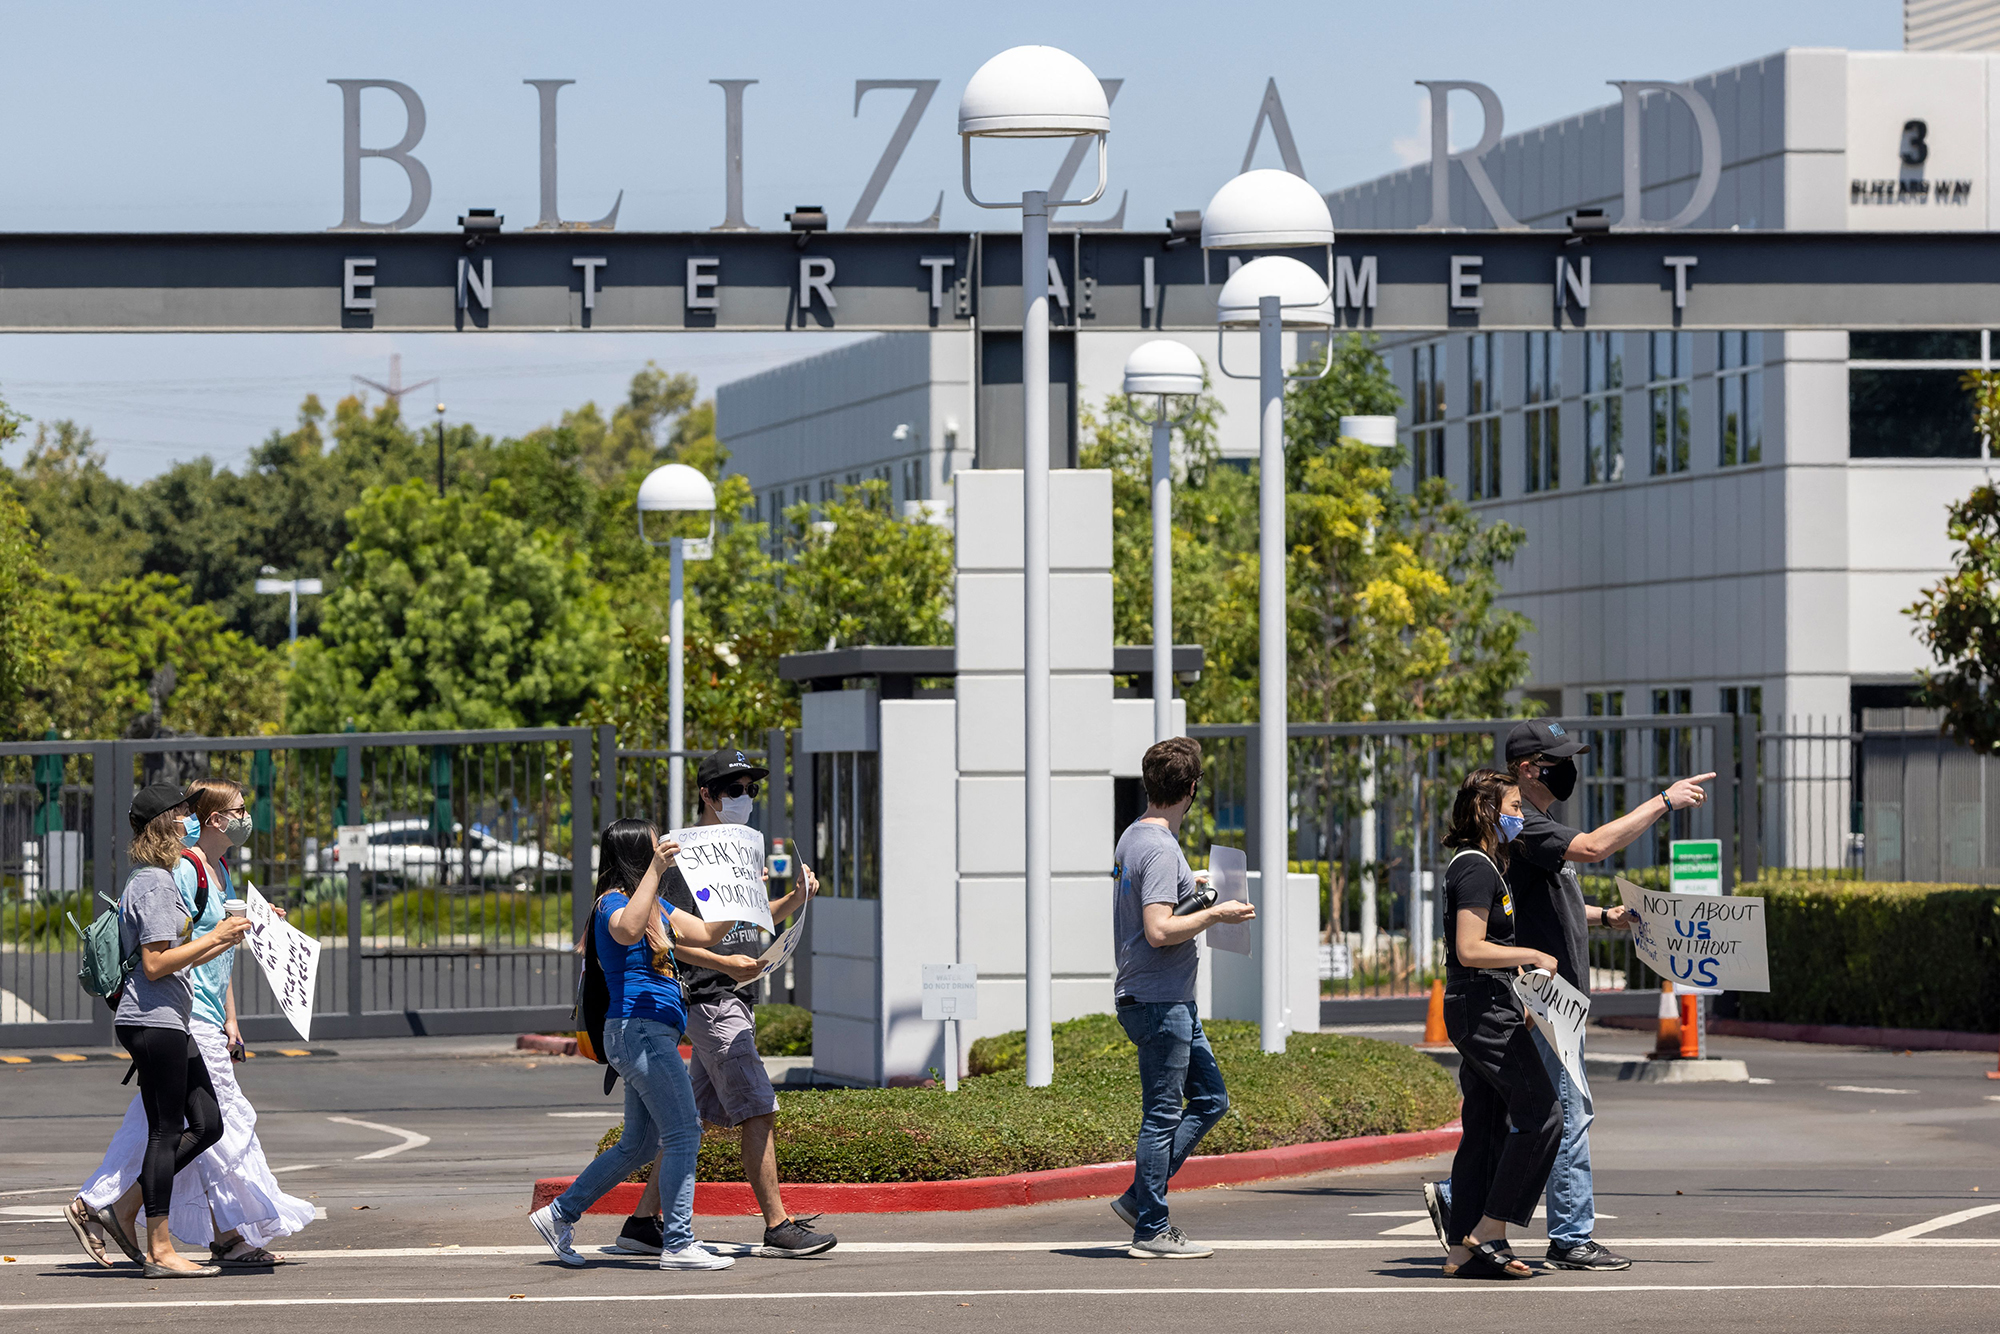 Activision Blizzard employees accuse company of unfair labor practices - WISH-TV